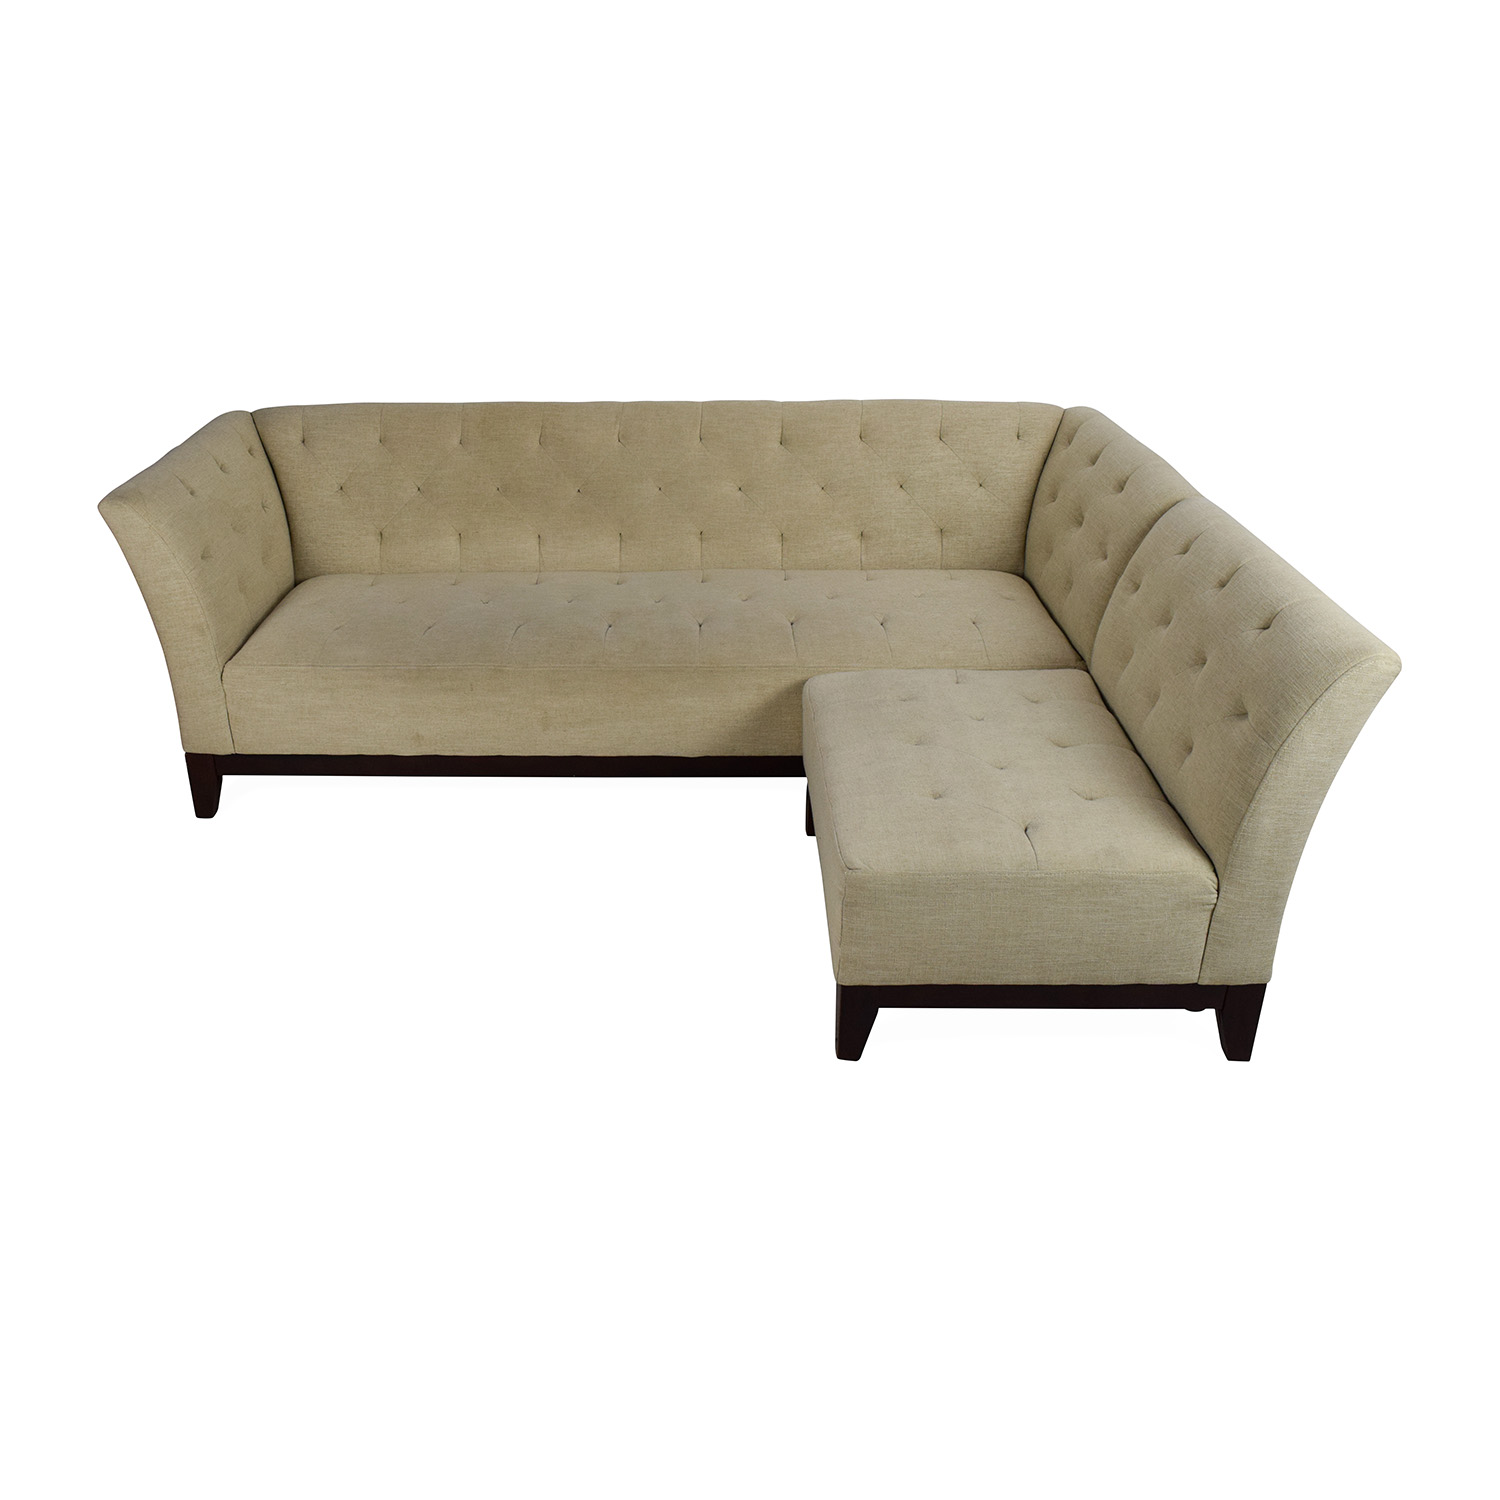 Macys Sofa: Macy's Radley 3-Piece Fabric Chaise Sectional